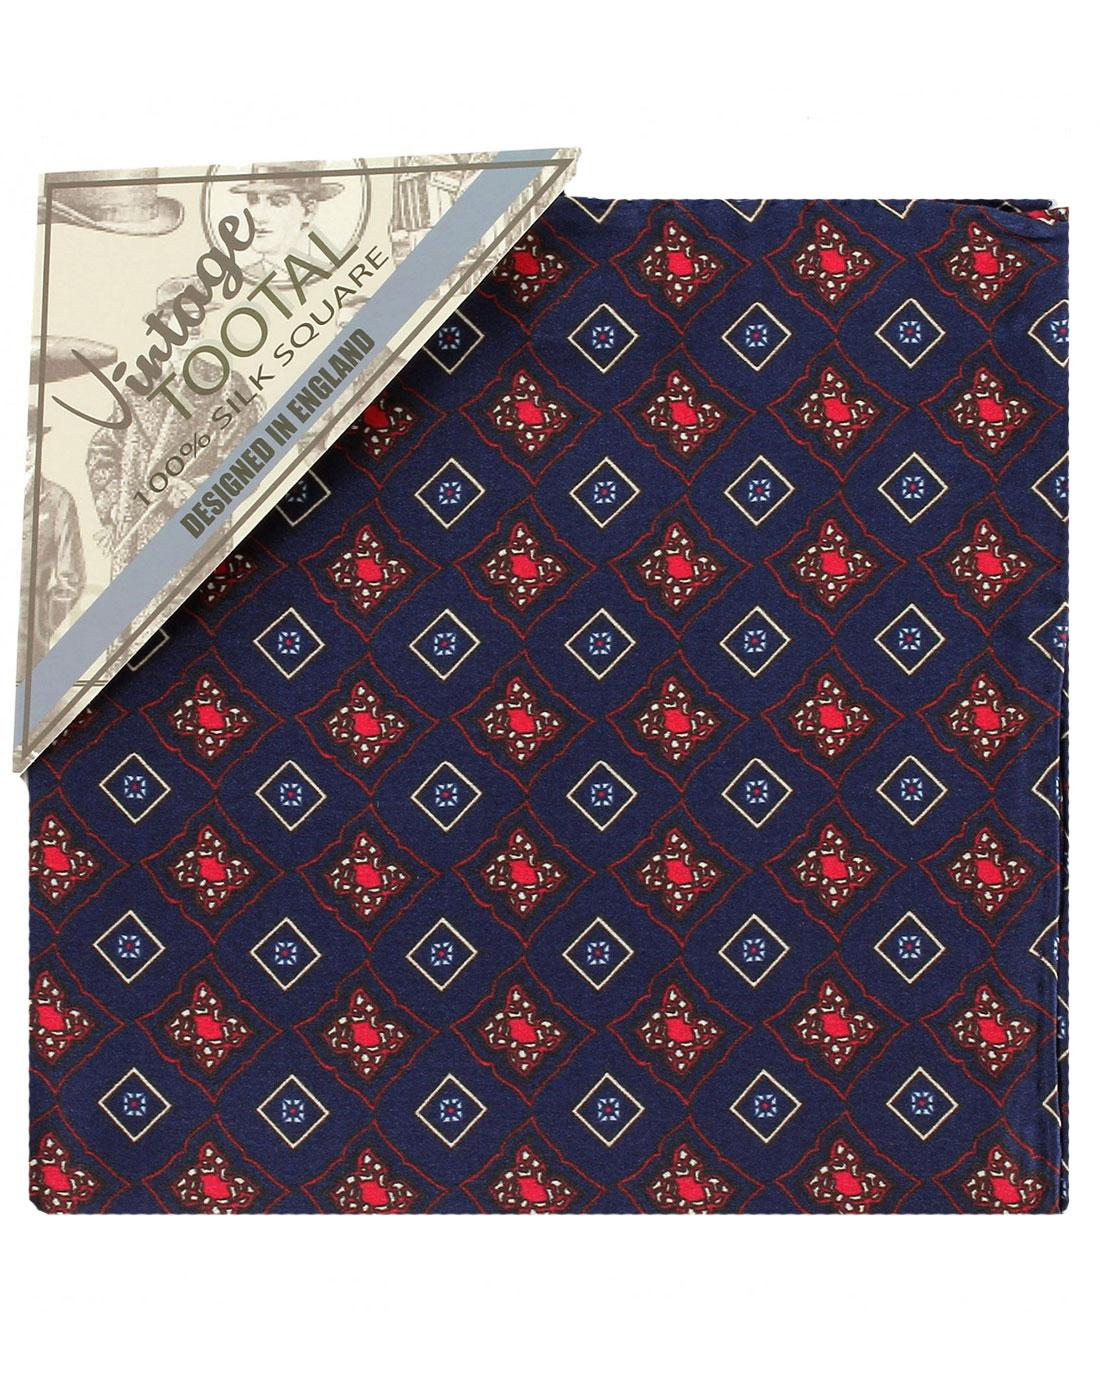 TOOTAL 60s Retro Mod Tile Silk Pocket Square Navy